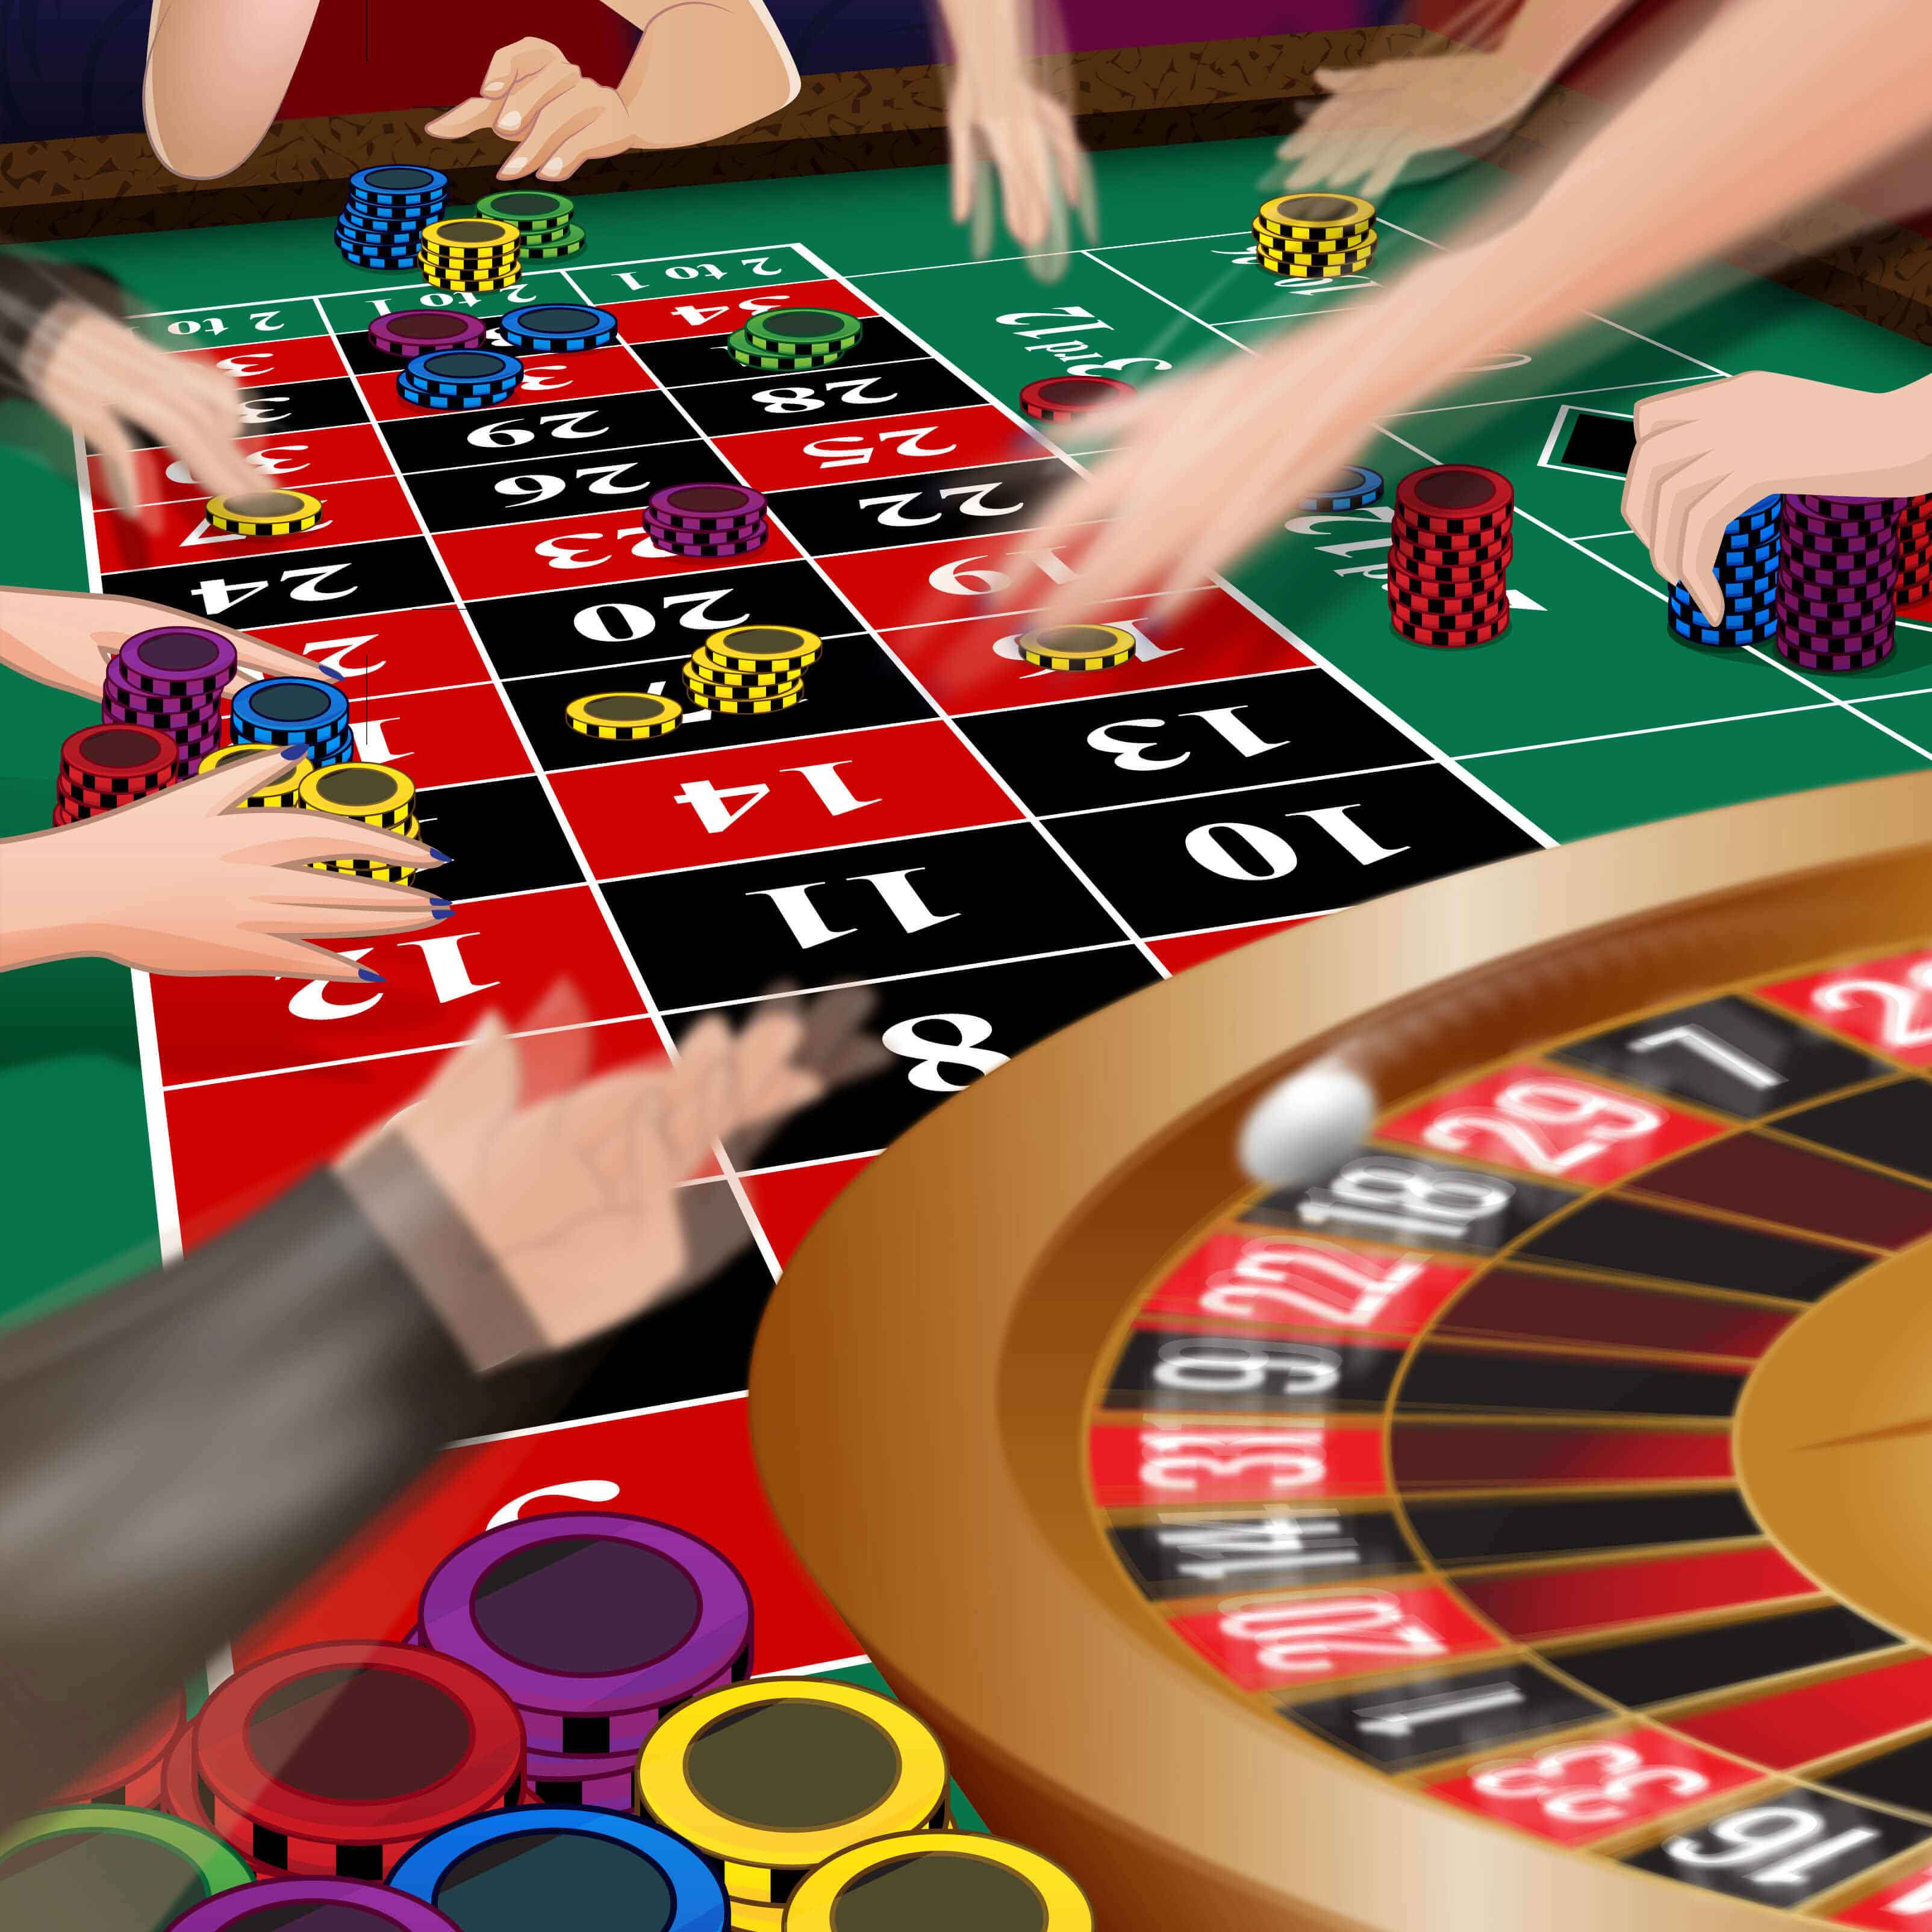 Placing even money bets on baccarat and roulette how to get good at cs go betting for poor